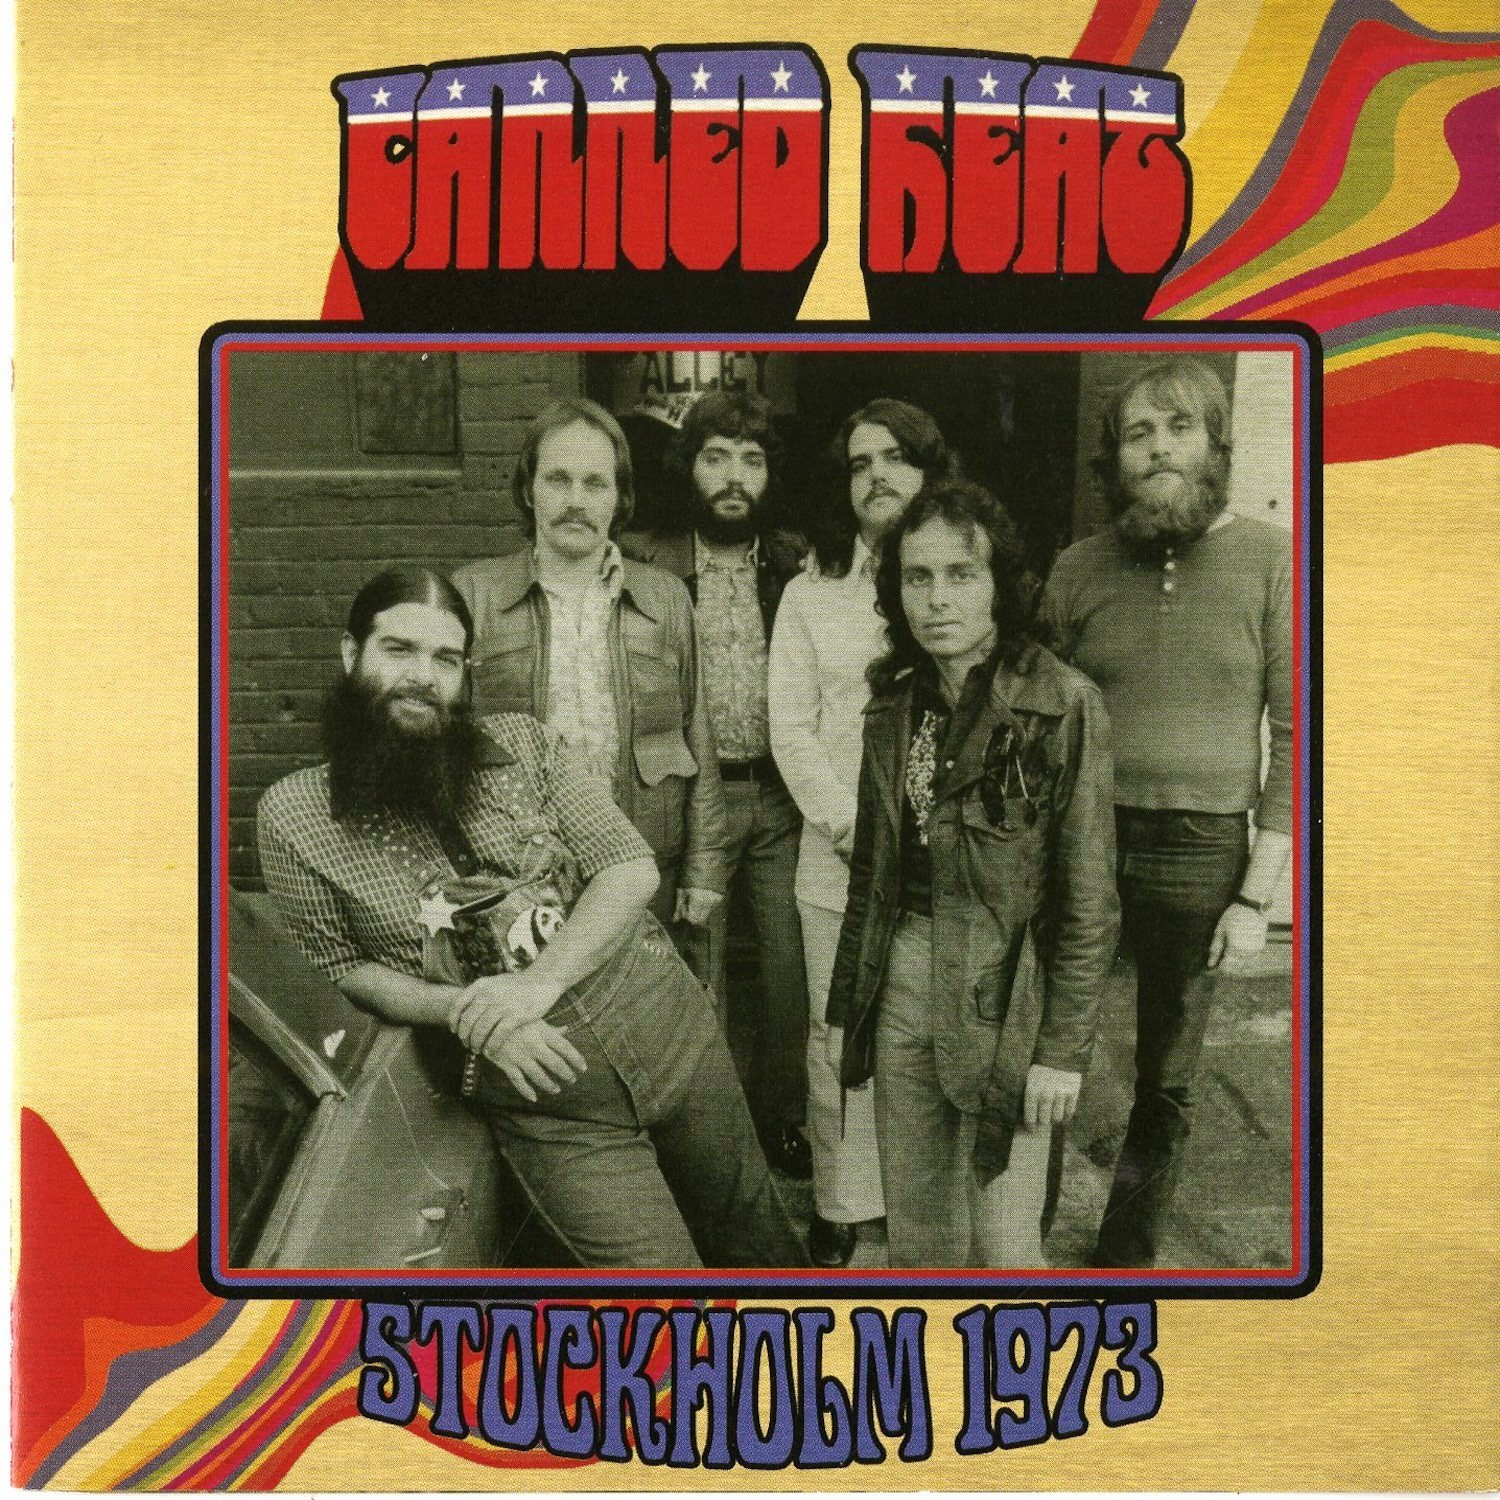 Canned Heat's Stockholm 1973